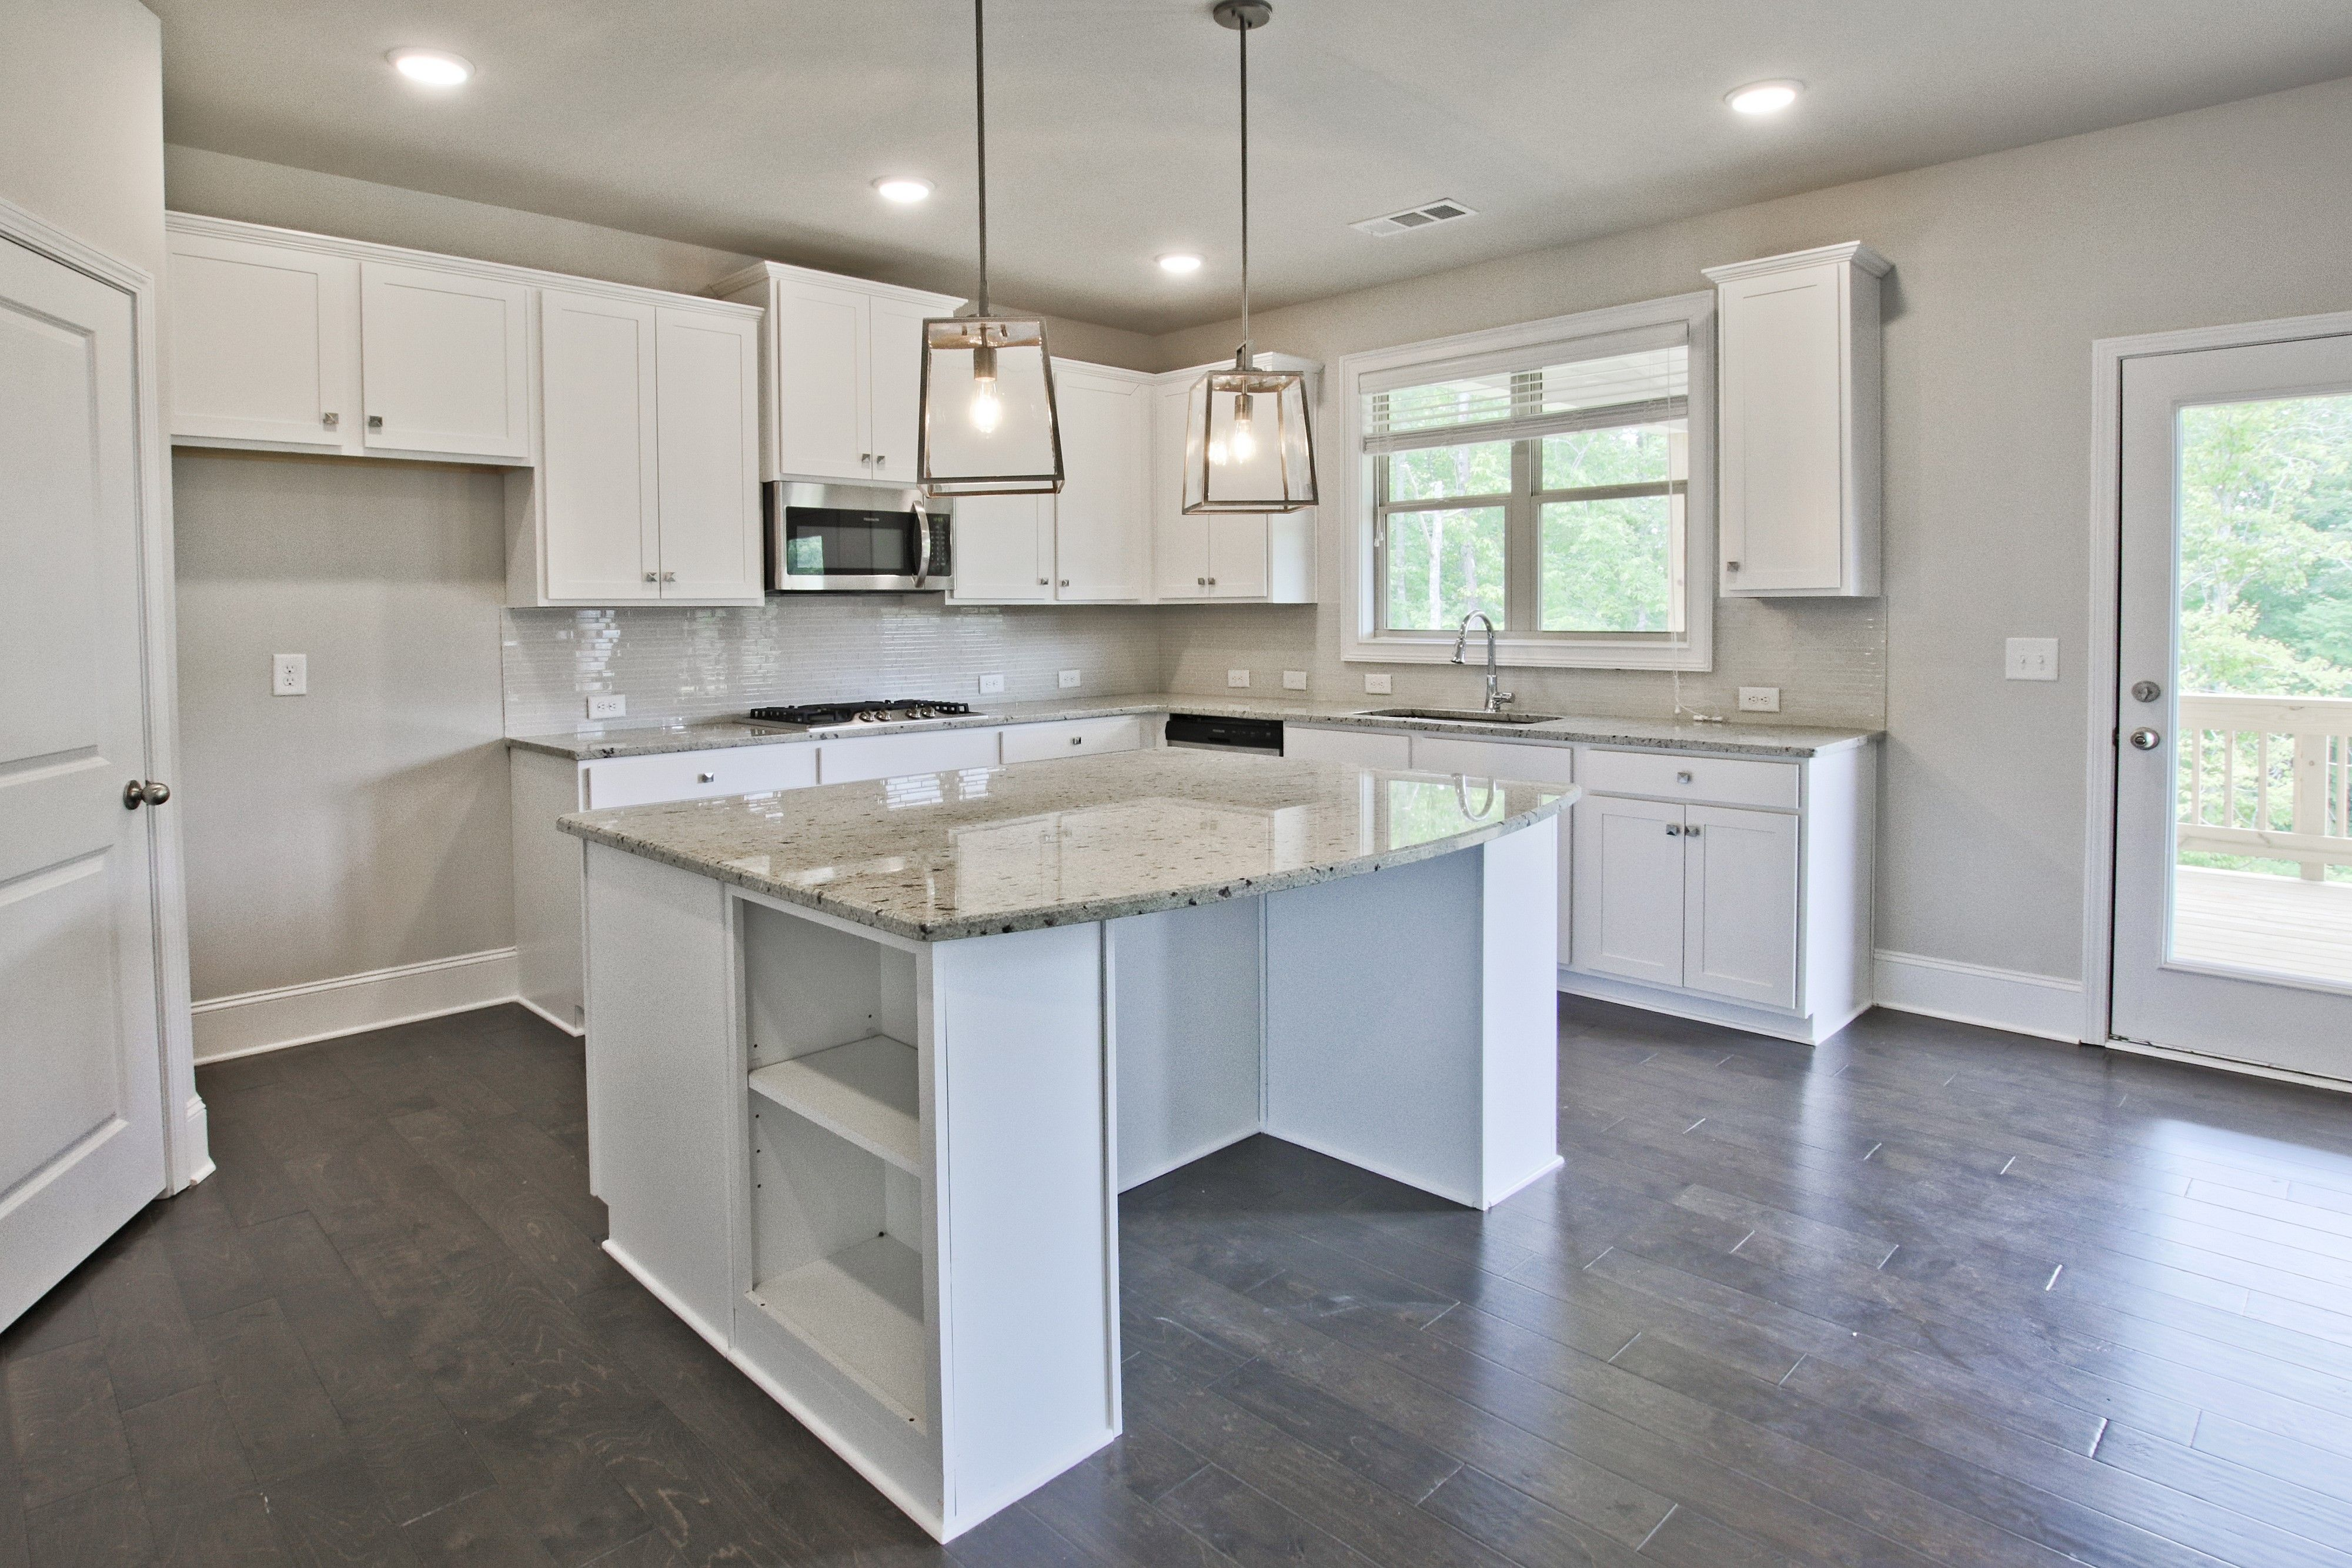 Kitchen featured in The Colton By Almont Homes in Atlanta, GA